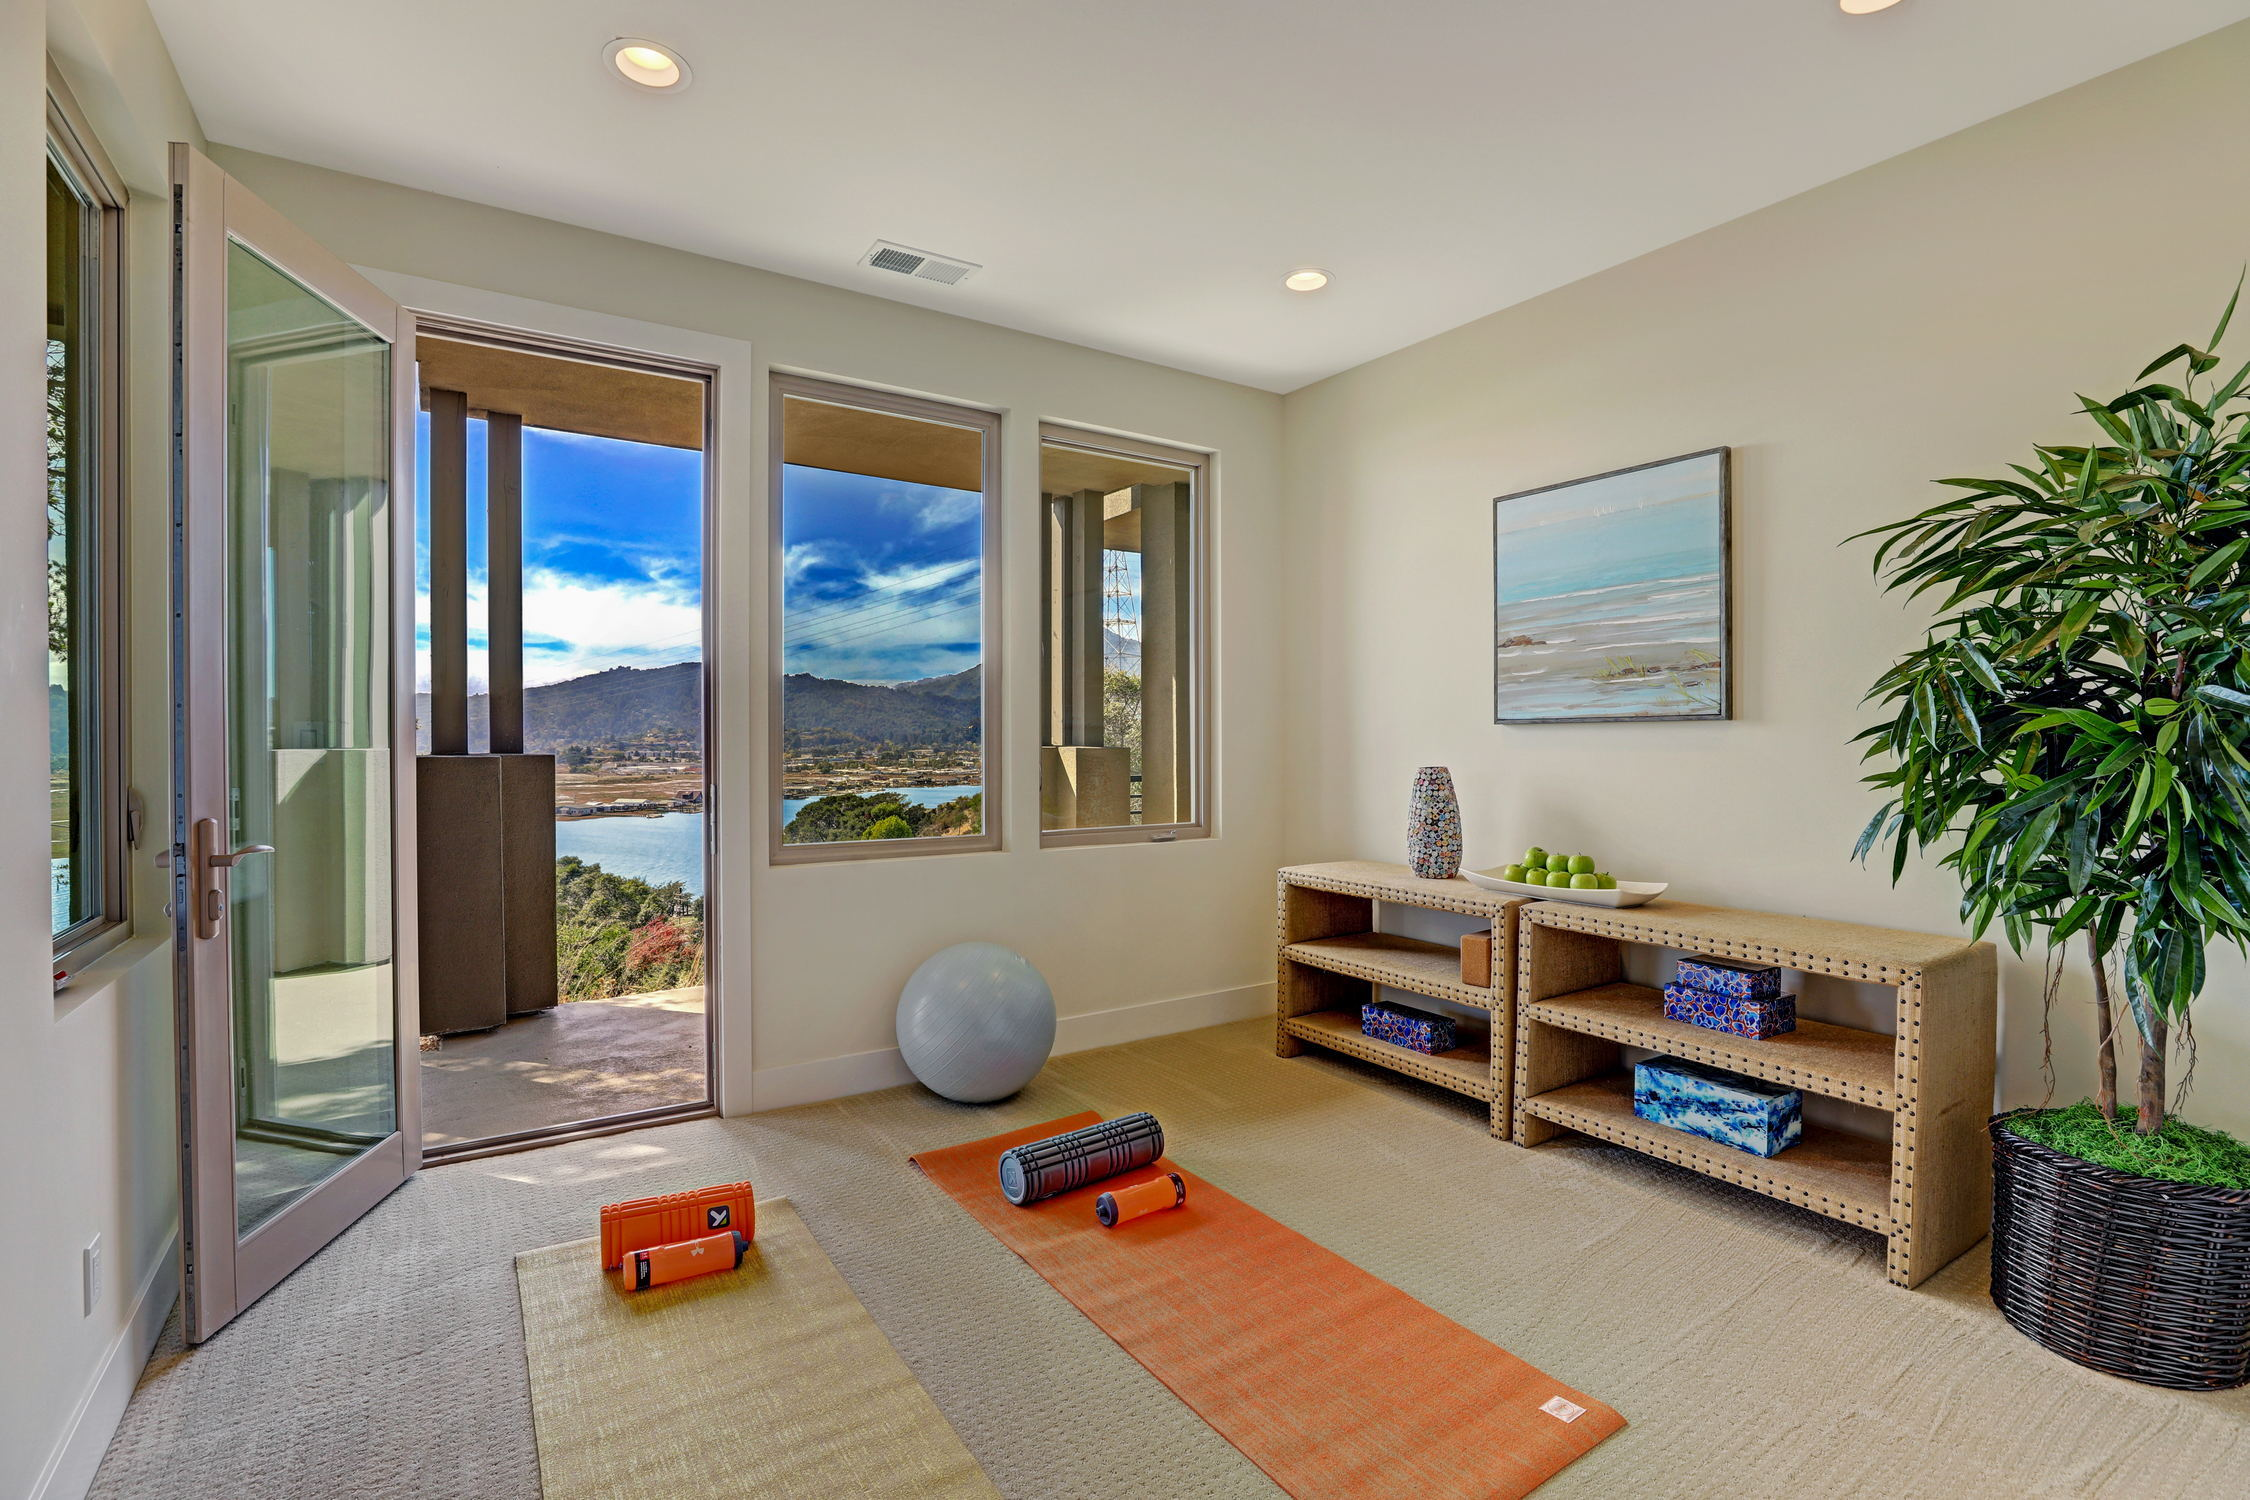 31 Drakes Cove, Larkspur Homes for Sale58 MLS - Own Marin with Compass - Mill Valley Realtor.jpg